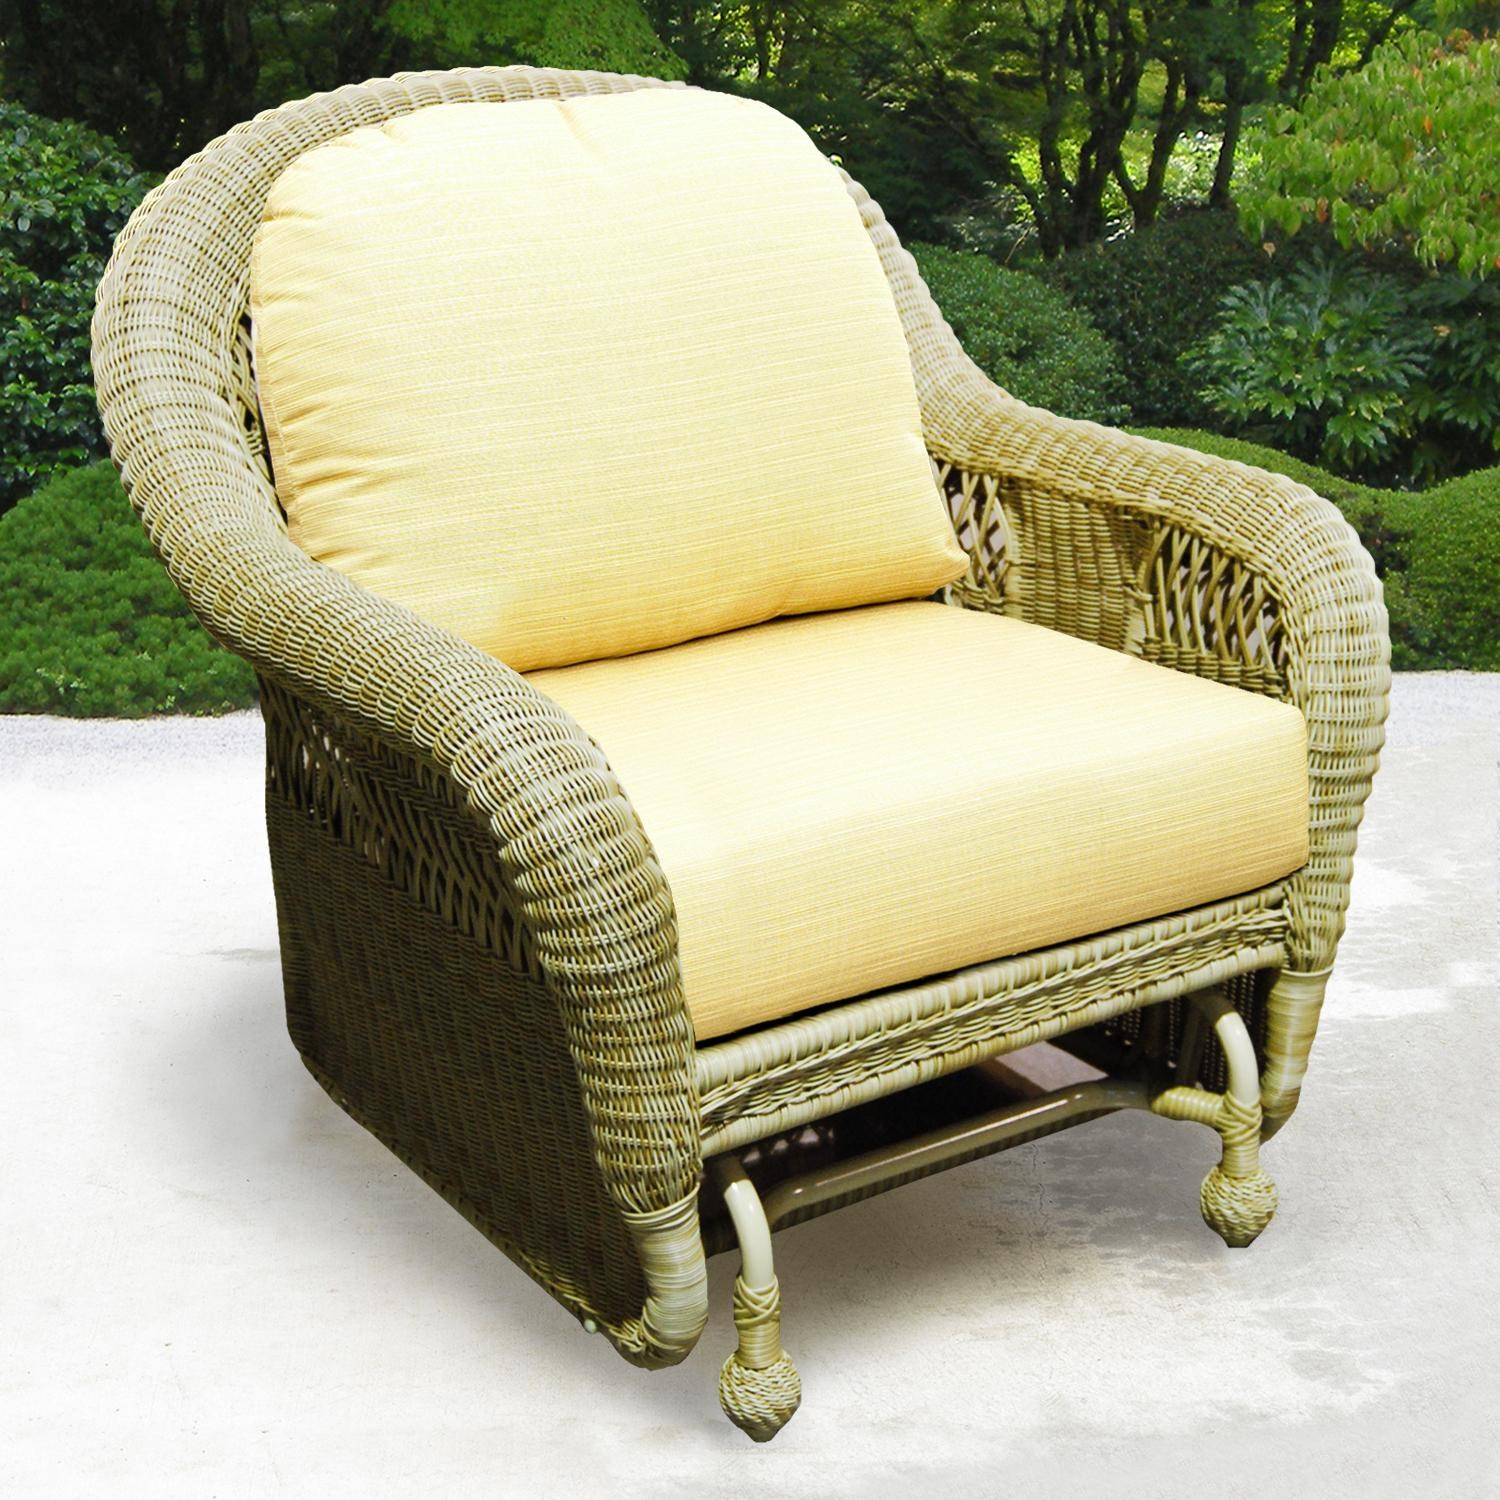 Home Outdoor Upholstered Chair NorthCape International St Lucia Single  Glider. NorthCape International St LuciaSingle Glider